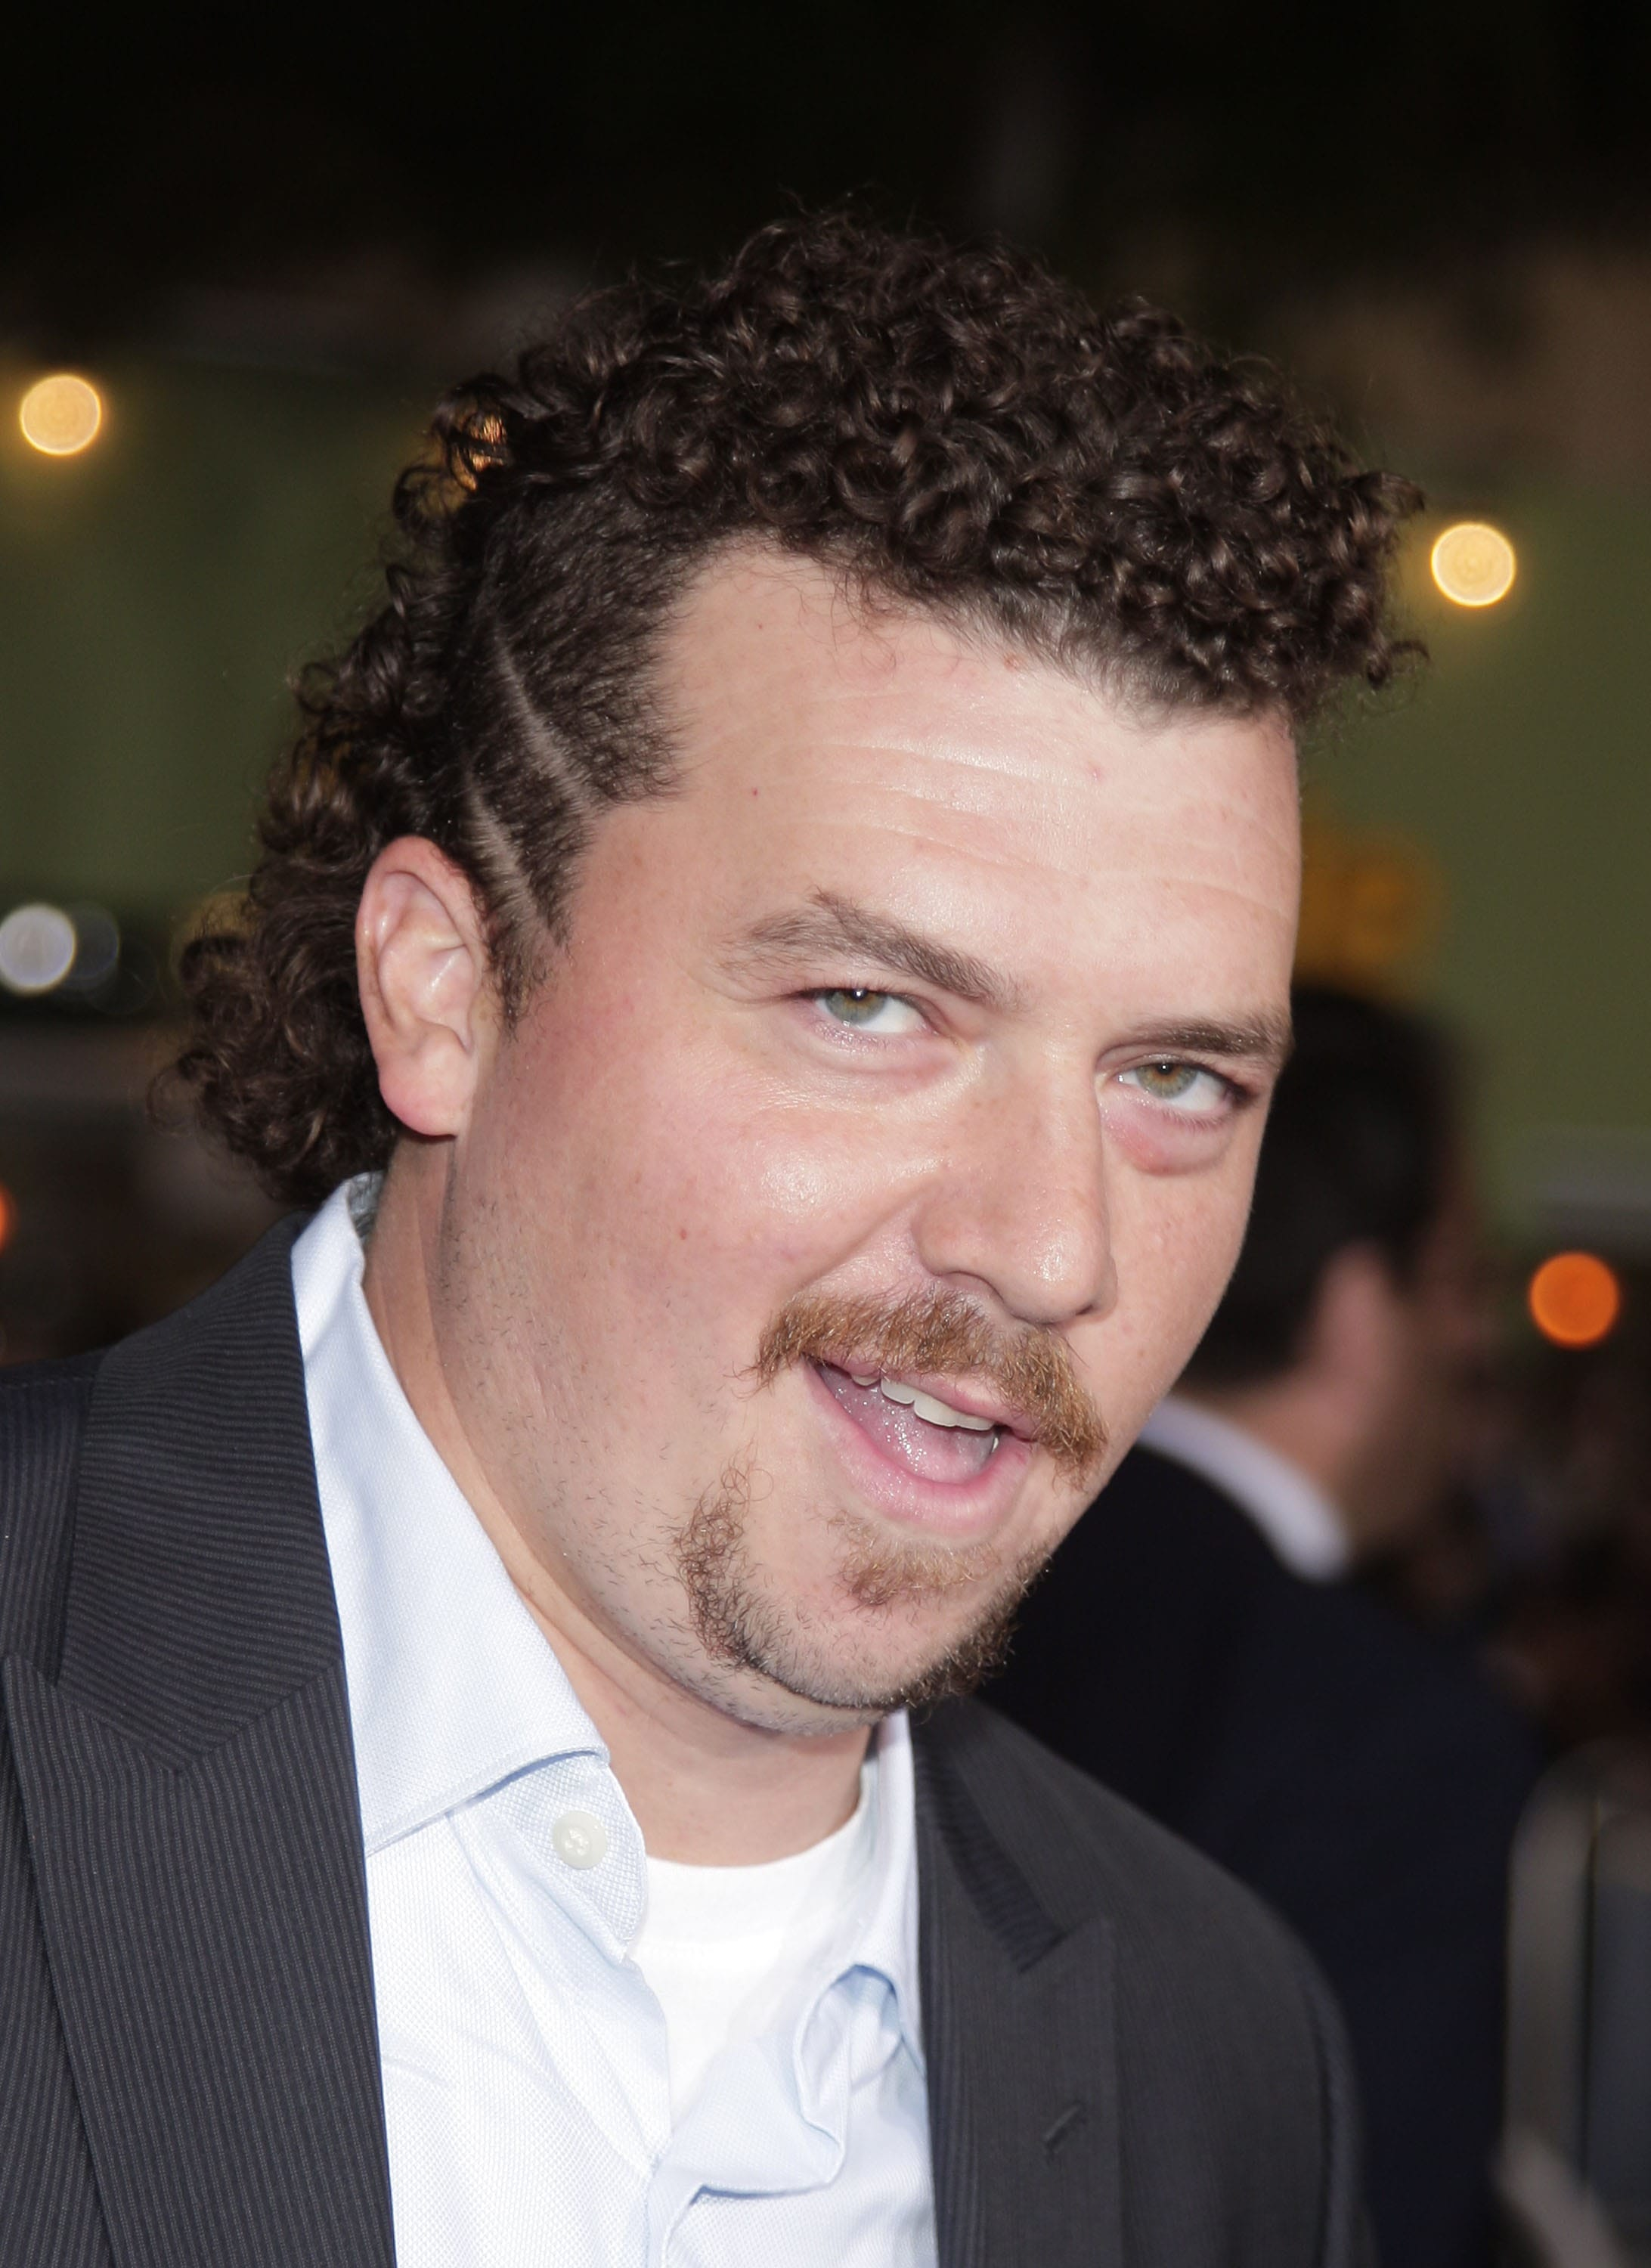 Danny Mcbride Background